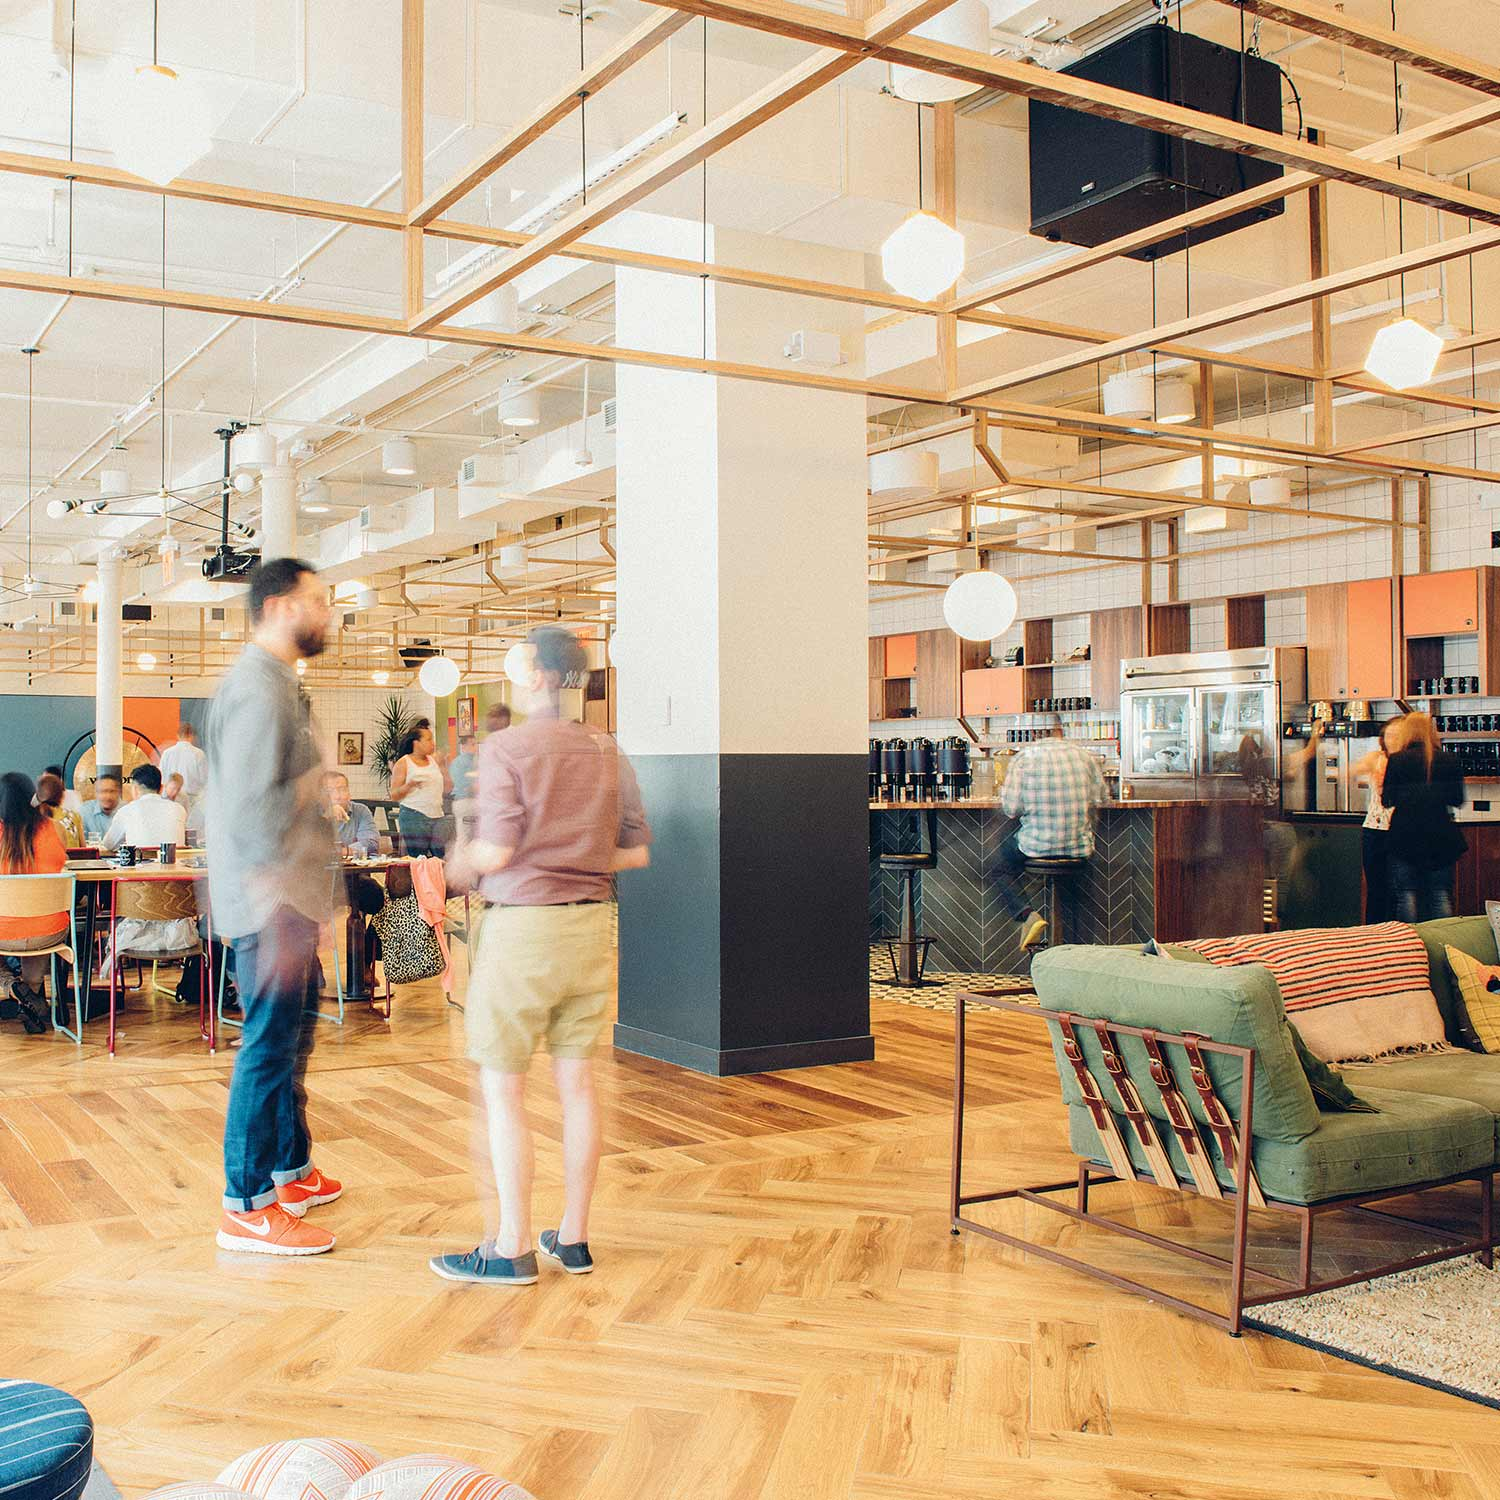 The open WeWork foor plan promotes community. Photography by Cait Oppermann.